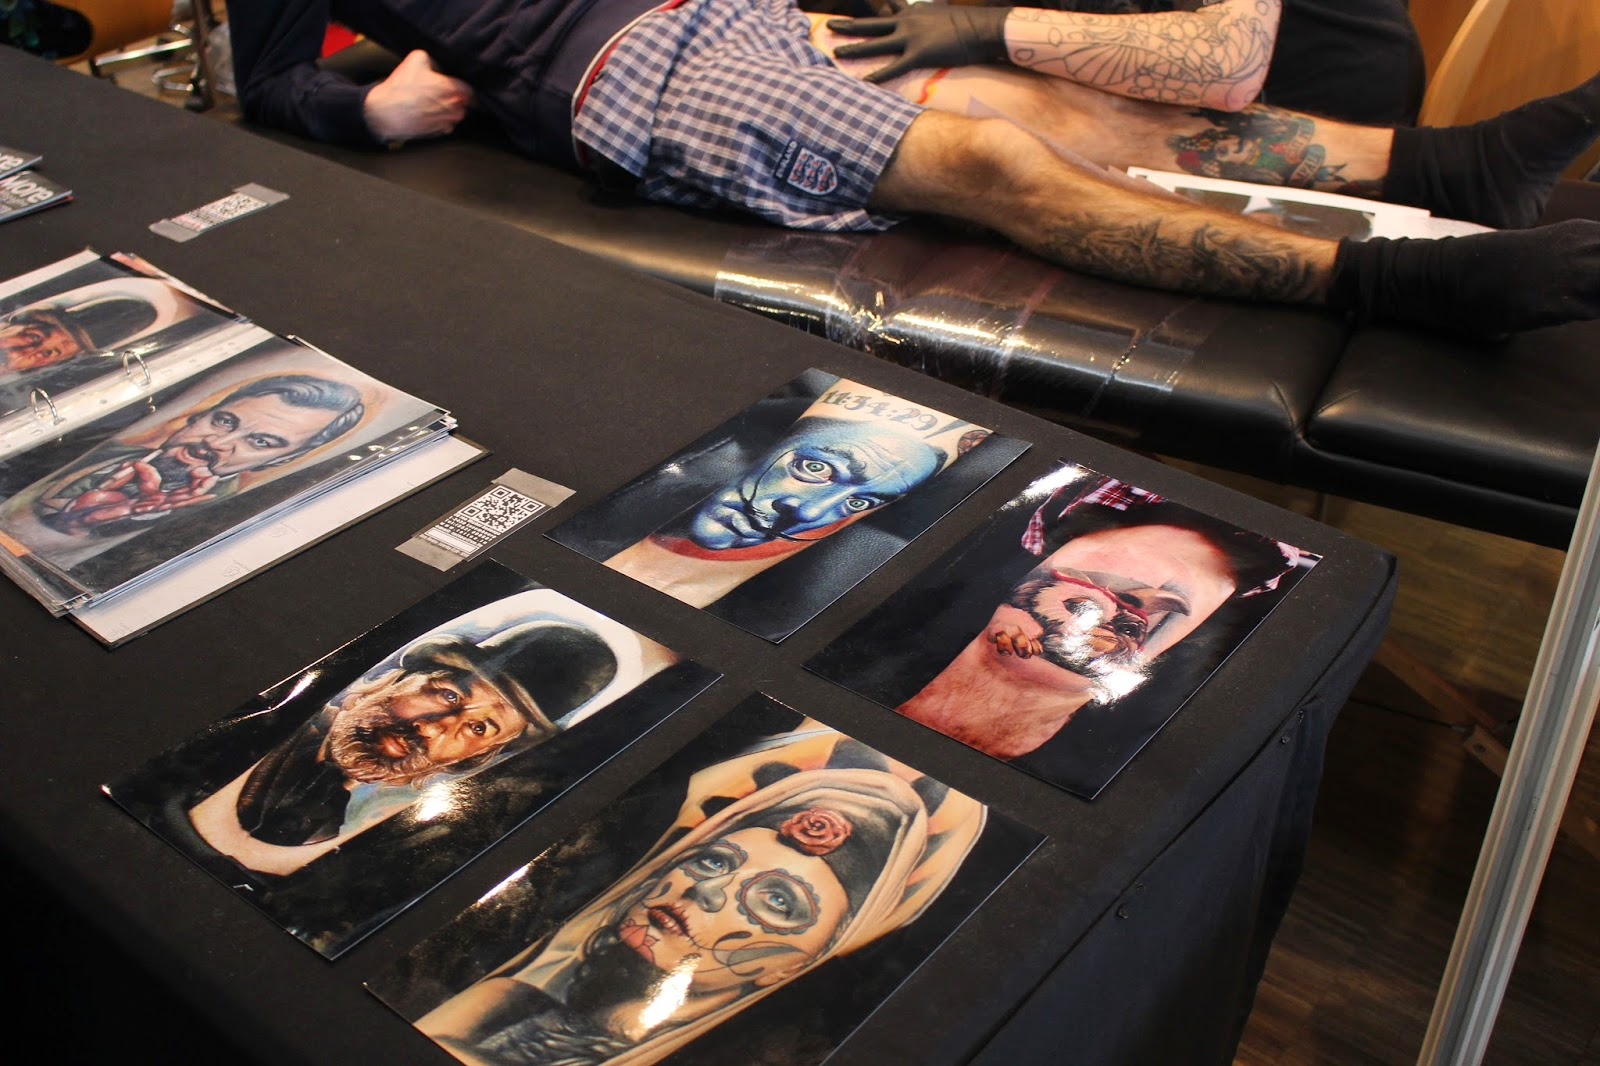 salon mondial du tatouage - Le Mondial du Tatouage 2016 Que Faire à Paris?